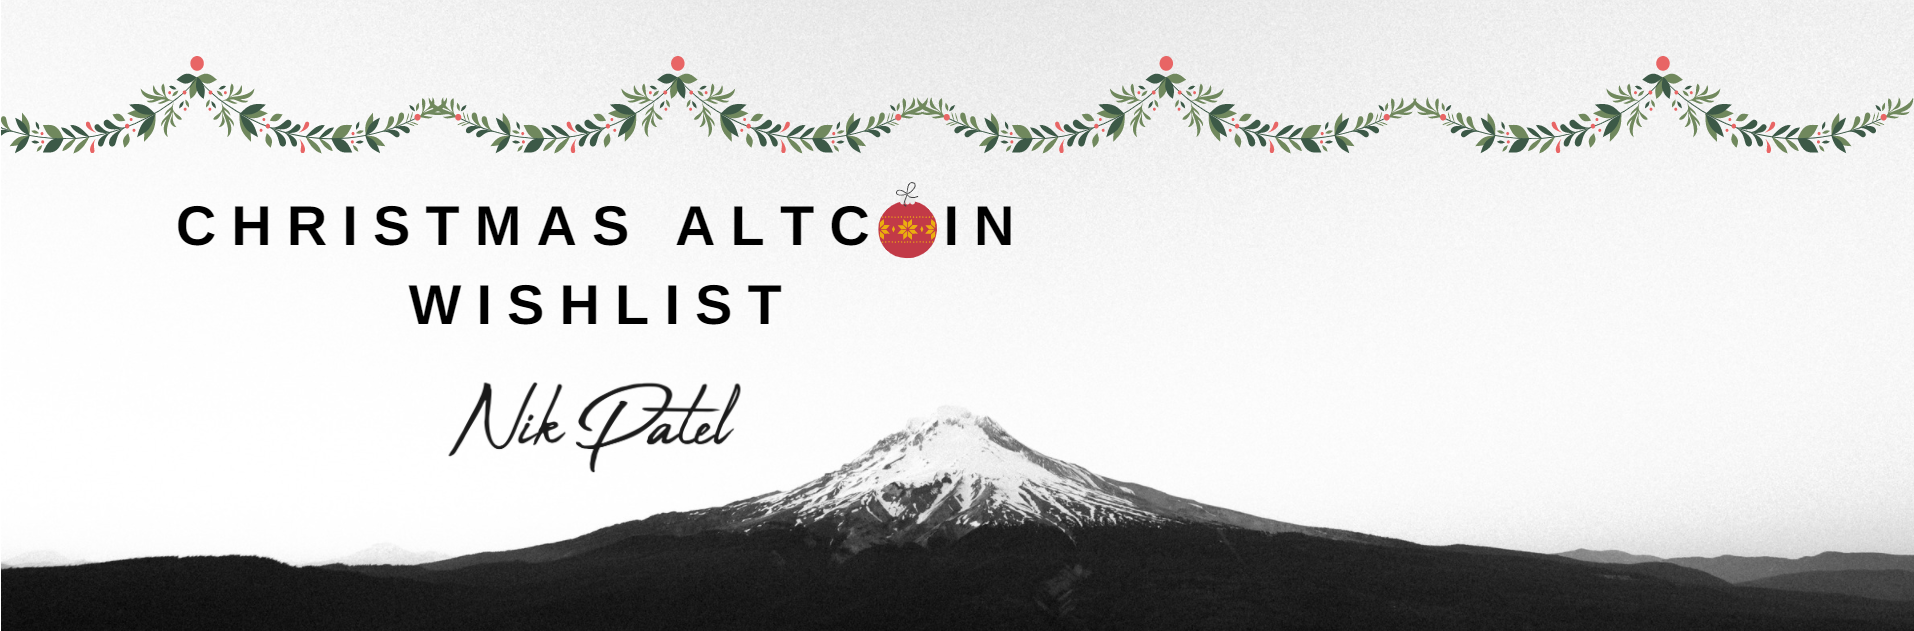 Christmas Altcoin Wishlist: 82 Altcoins That I'm Paying Attention To